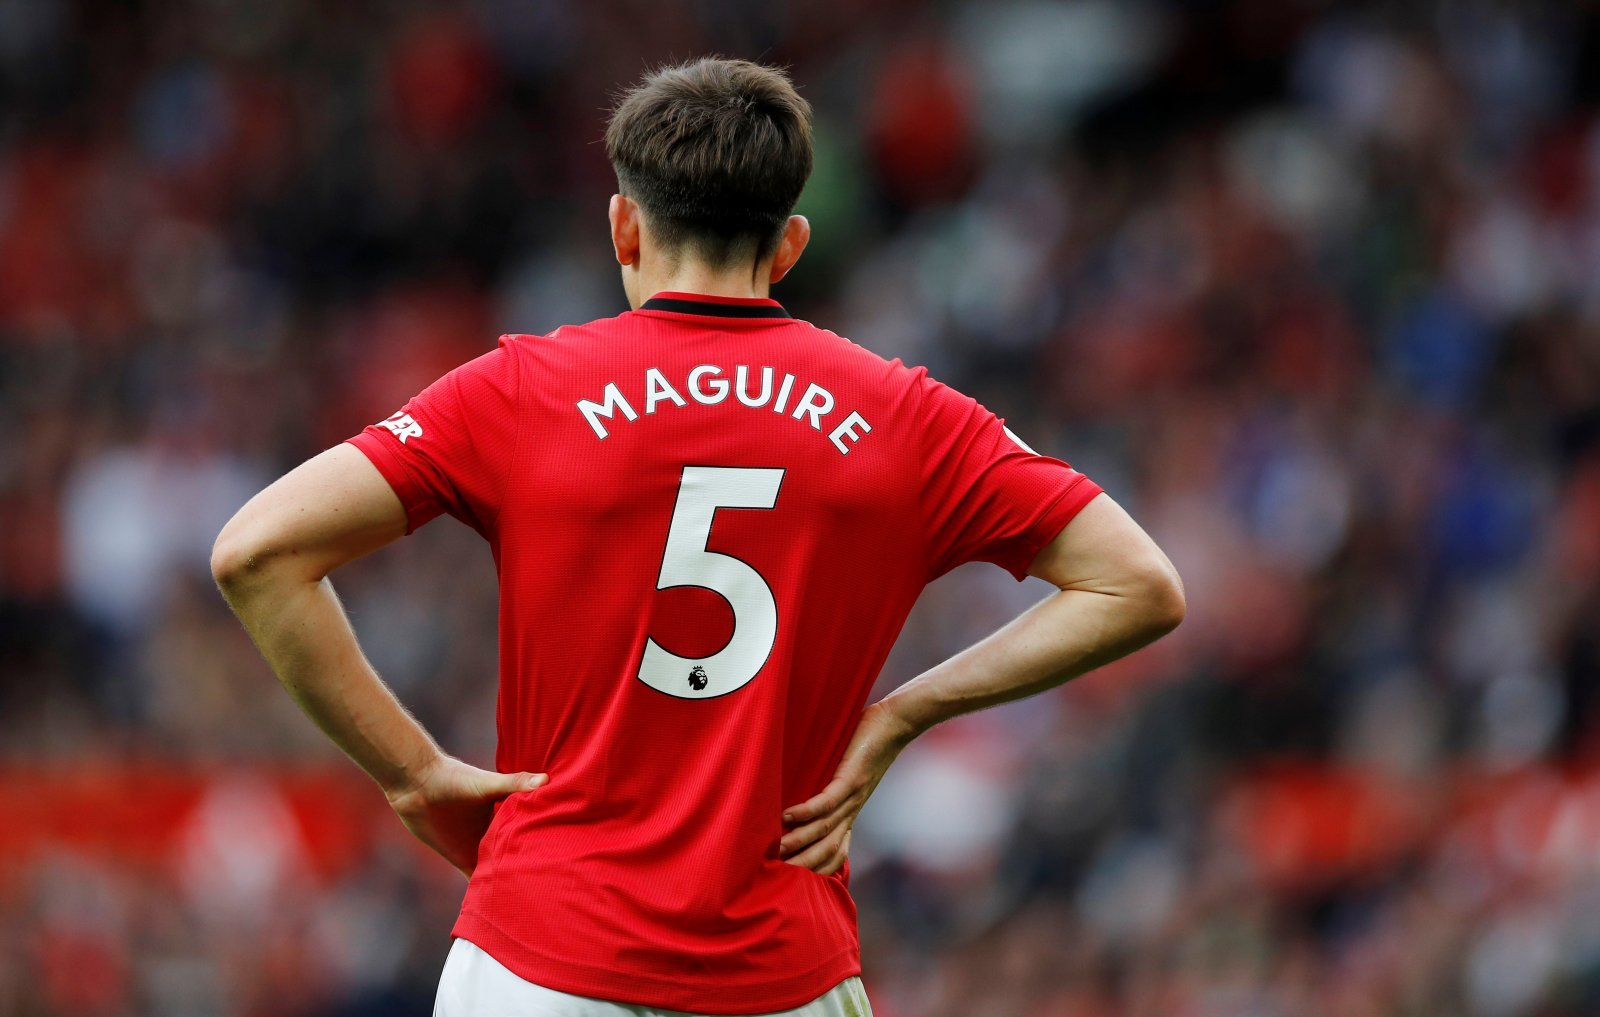 Manchester United: Plenty of fans loved Harry Maguire's performance as derby day captain